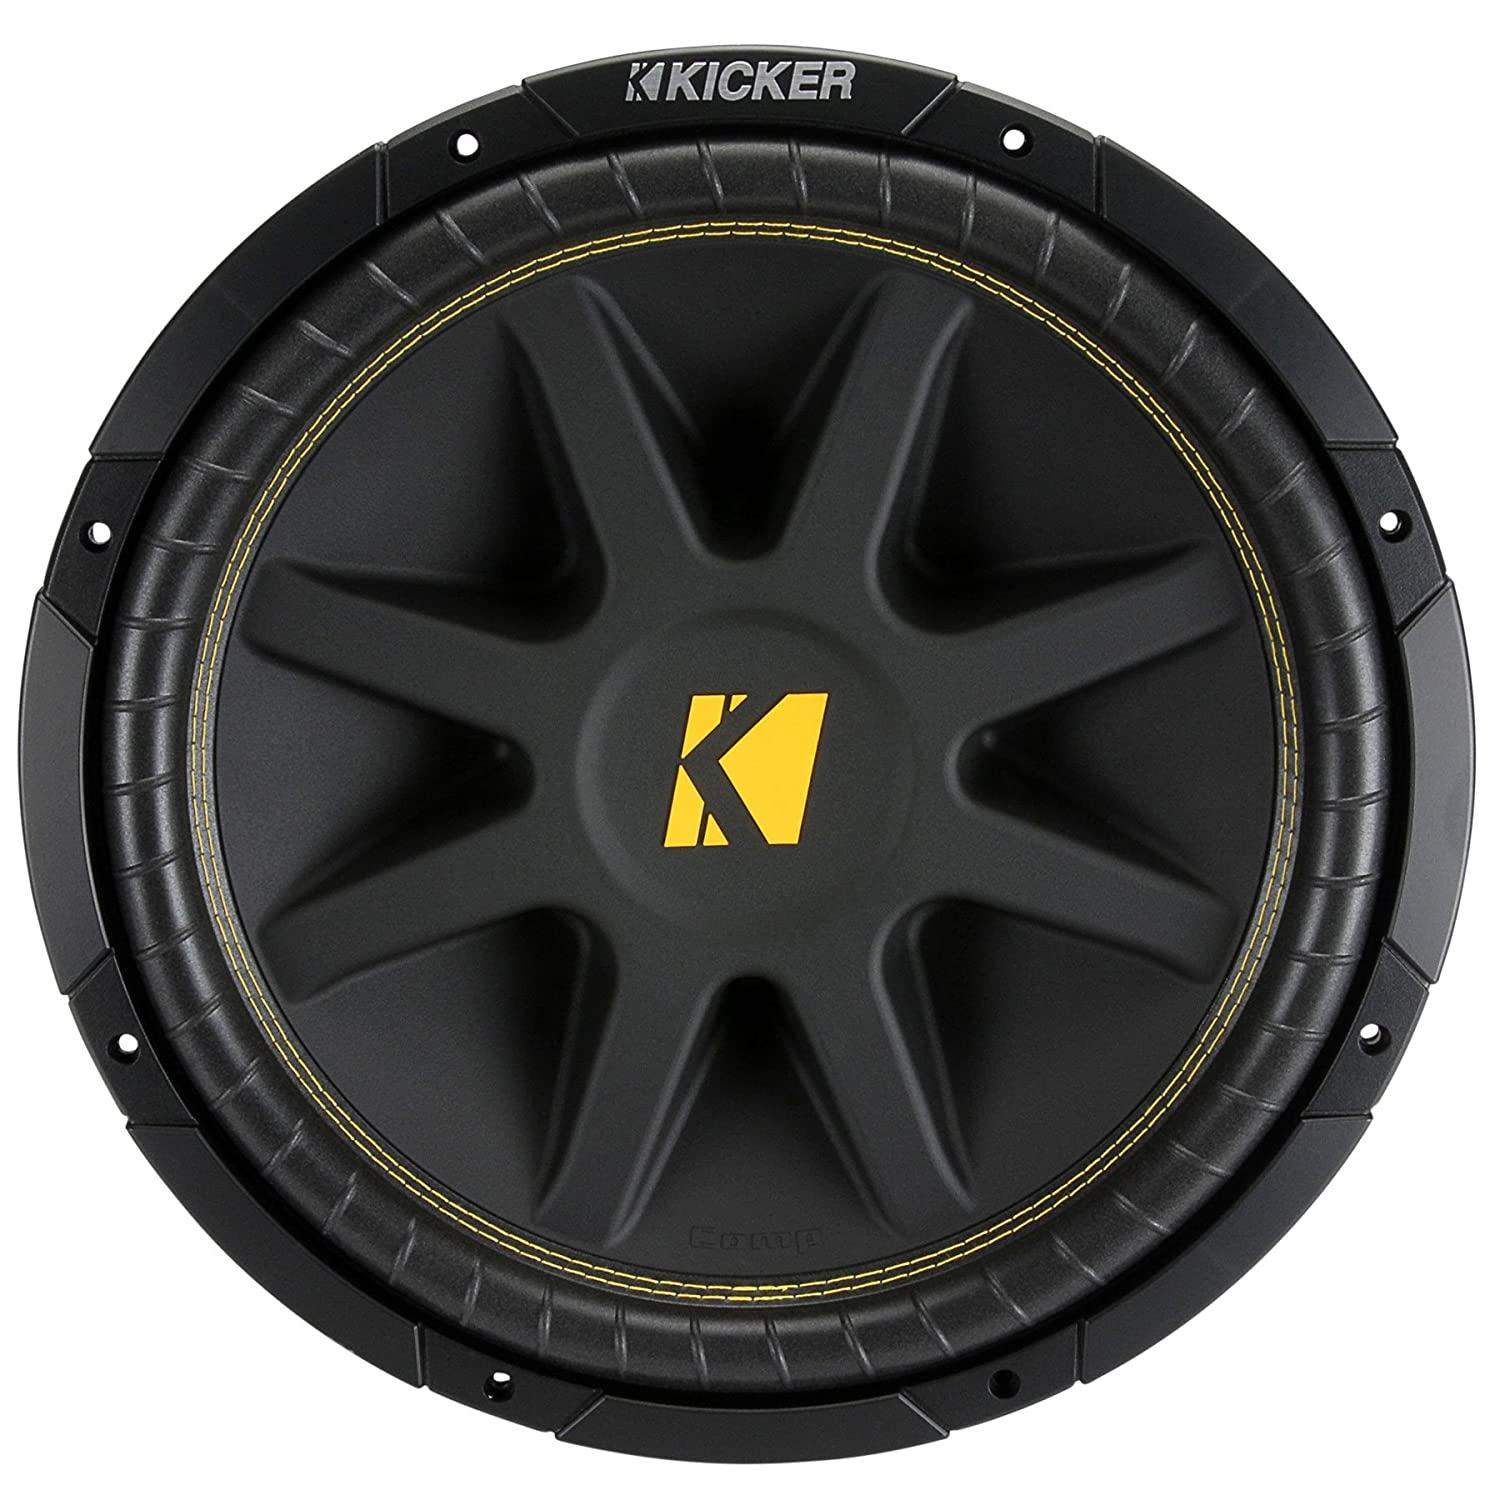 81Id9Kobs7L._SL1500_ amazon com kicker c154 250w 15\